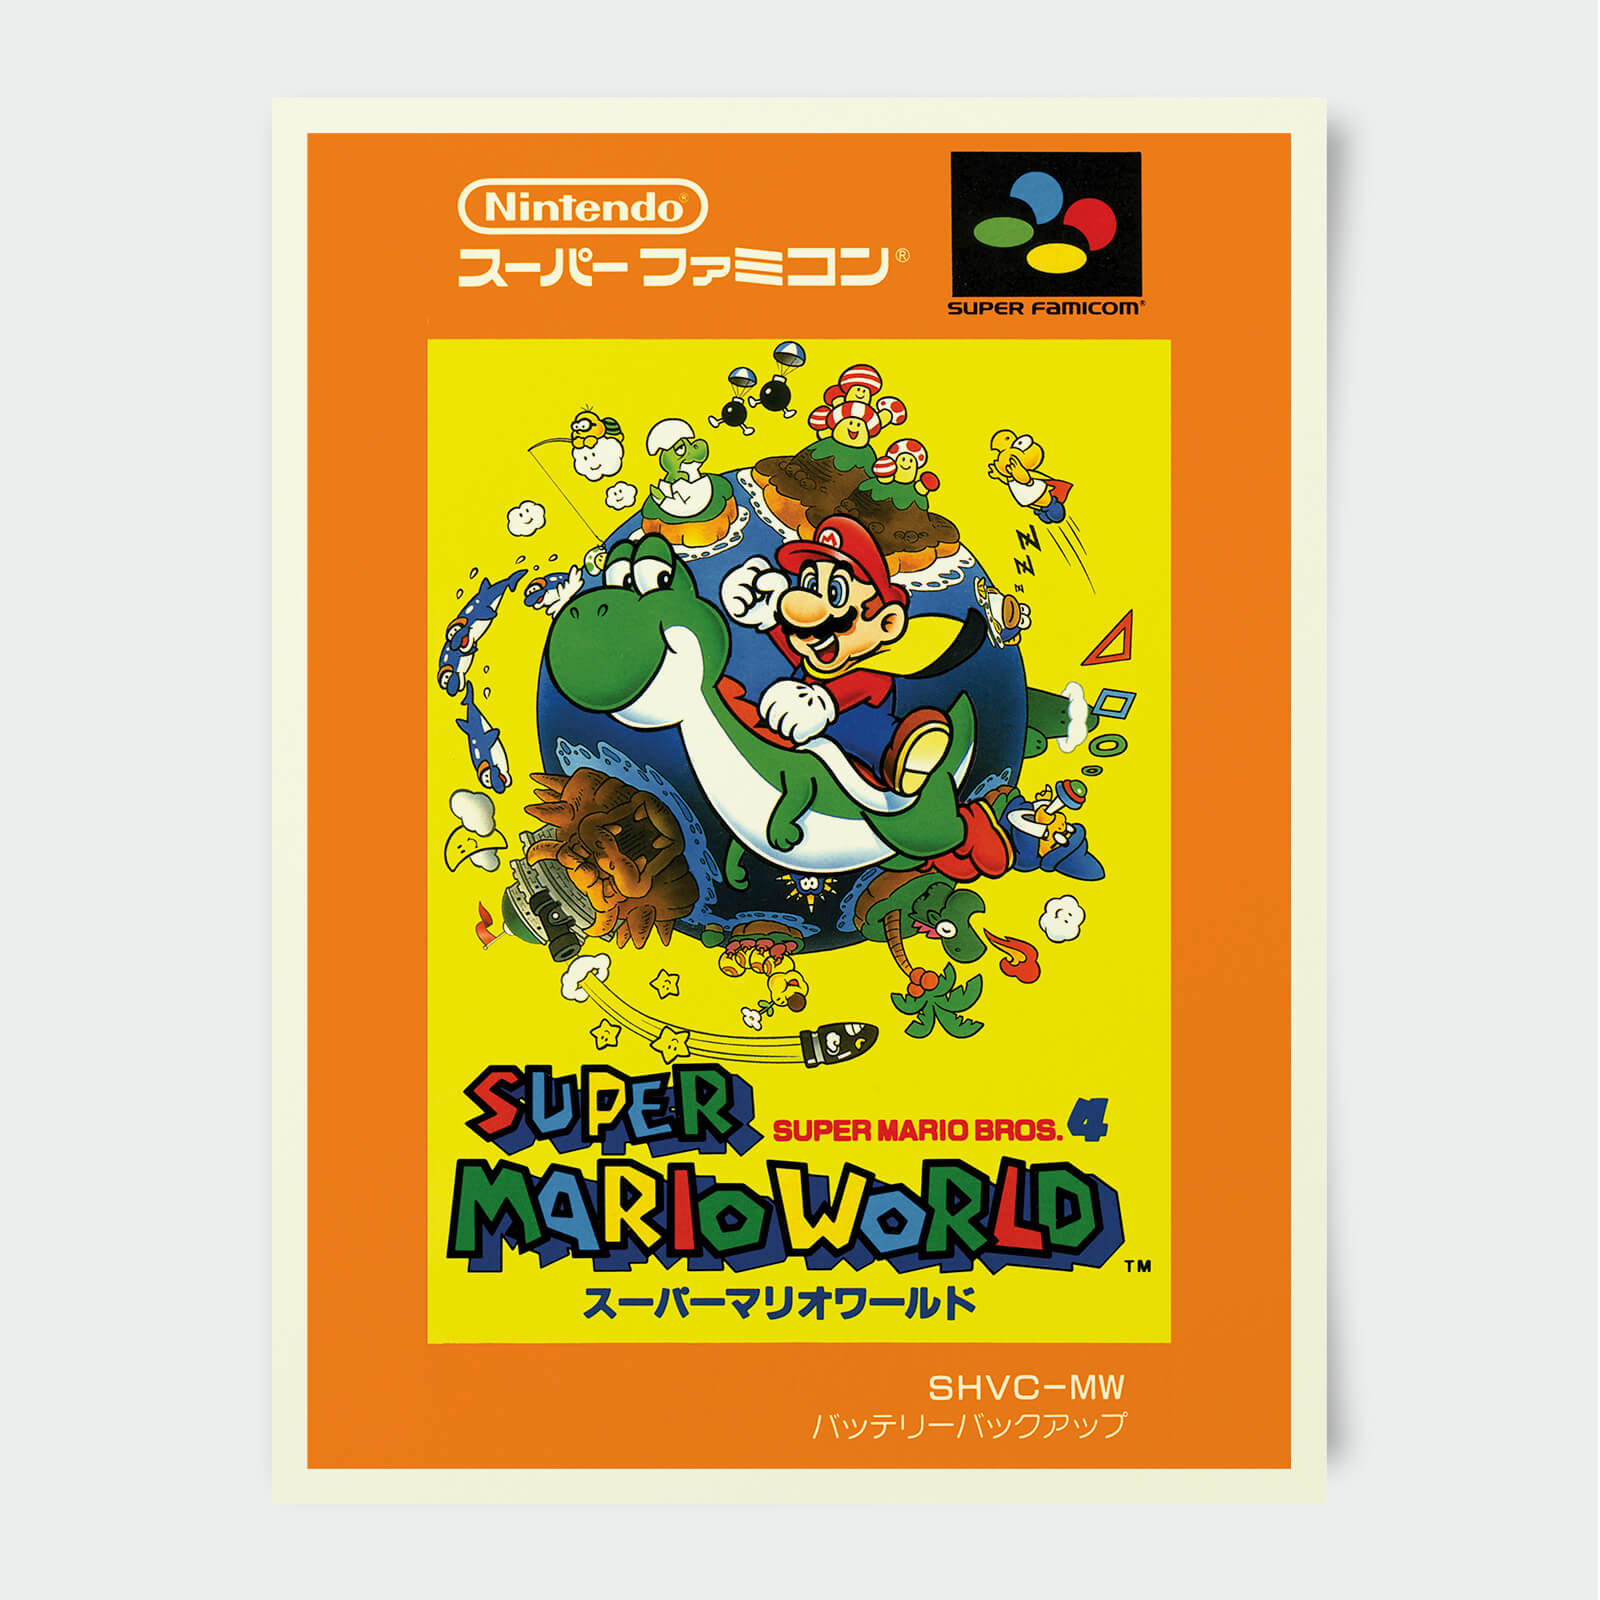 Nintendo Super Famicom Super Mario World Print